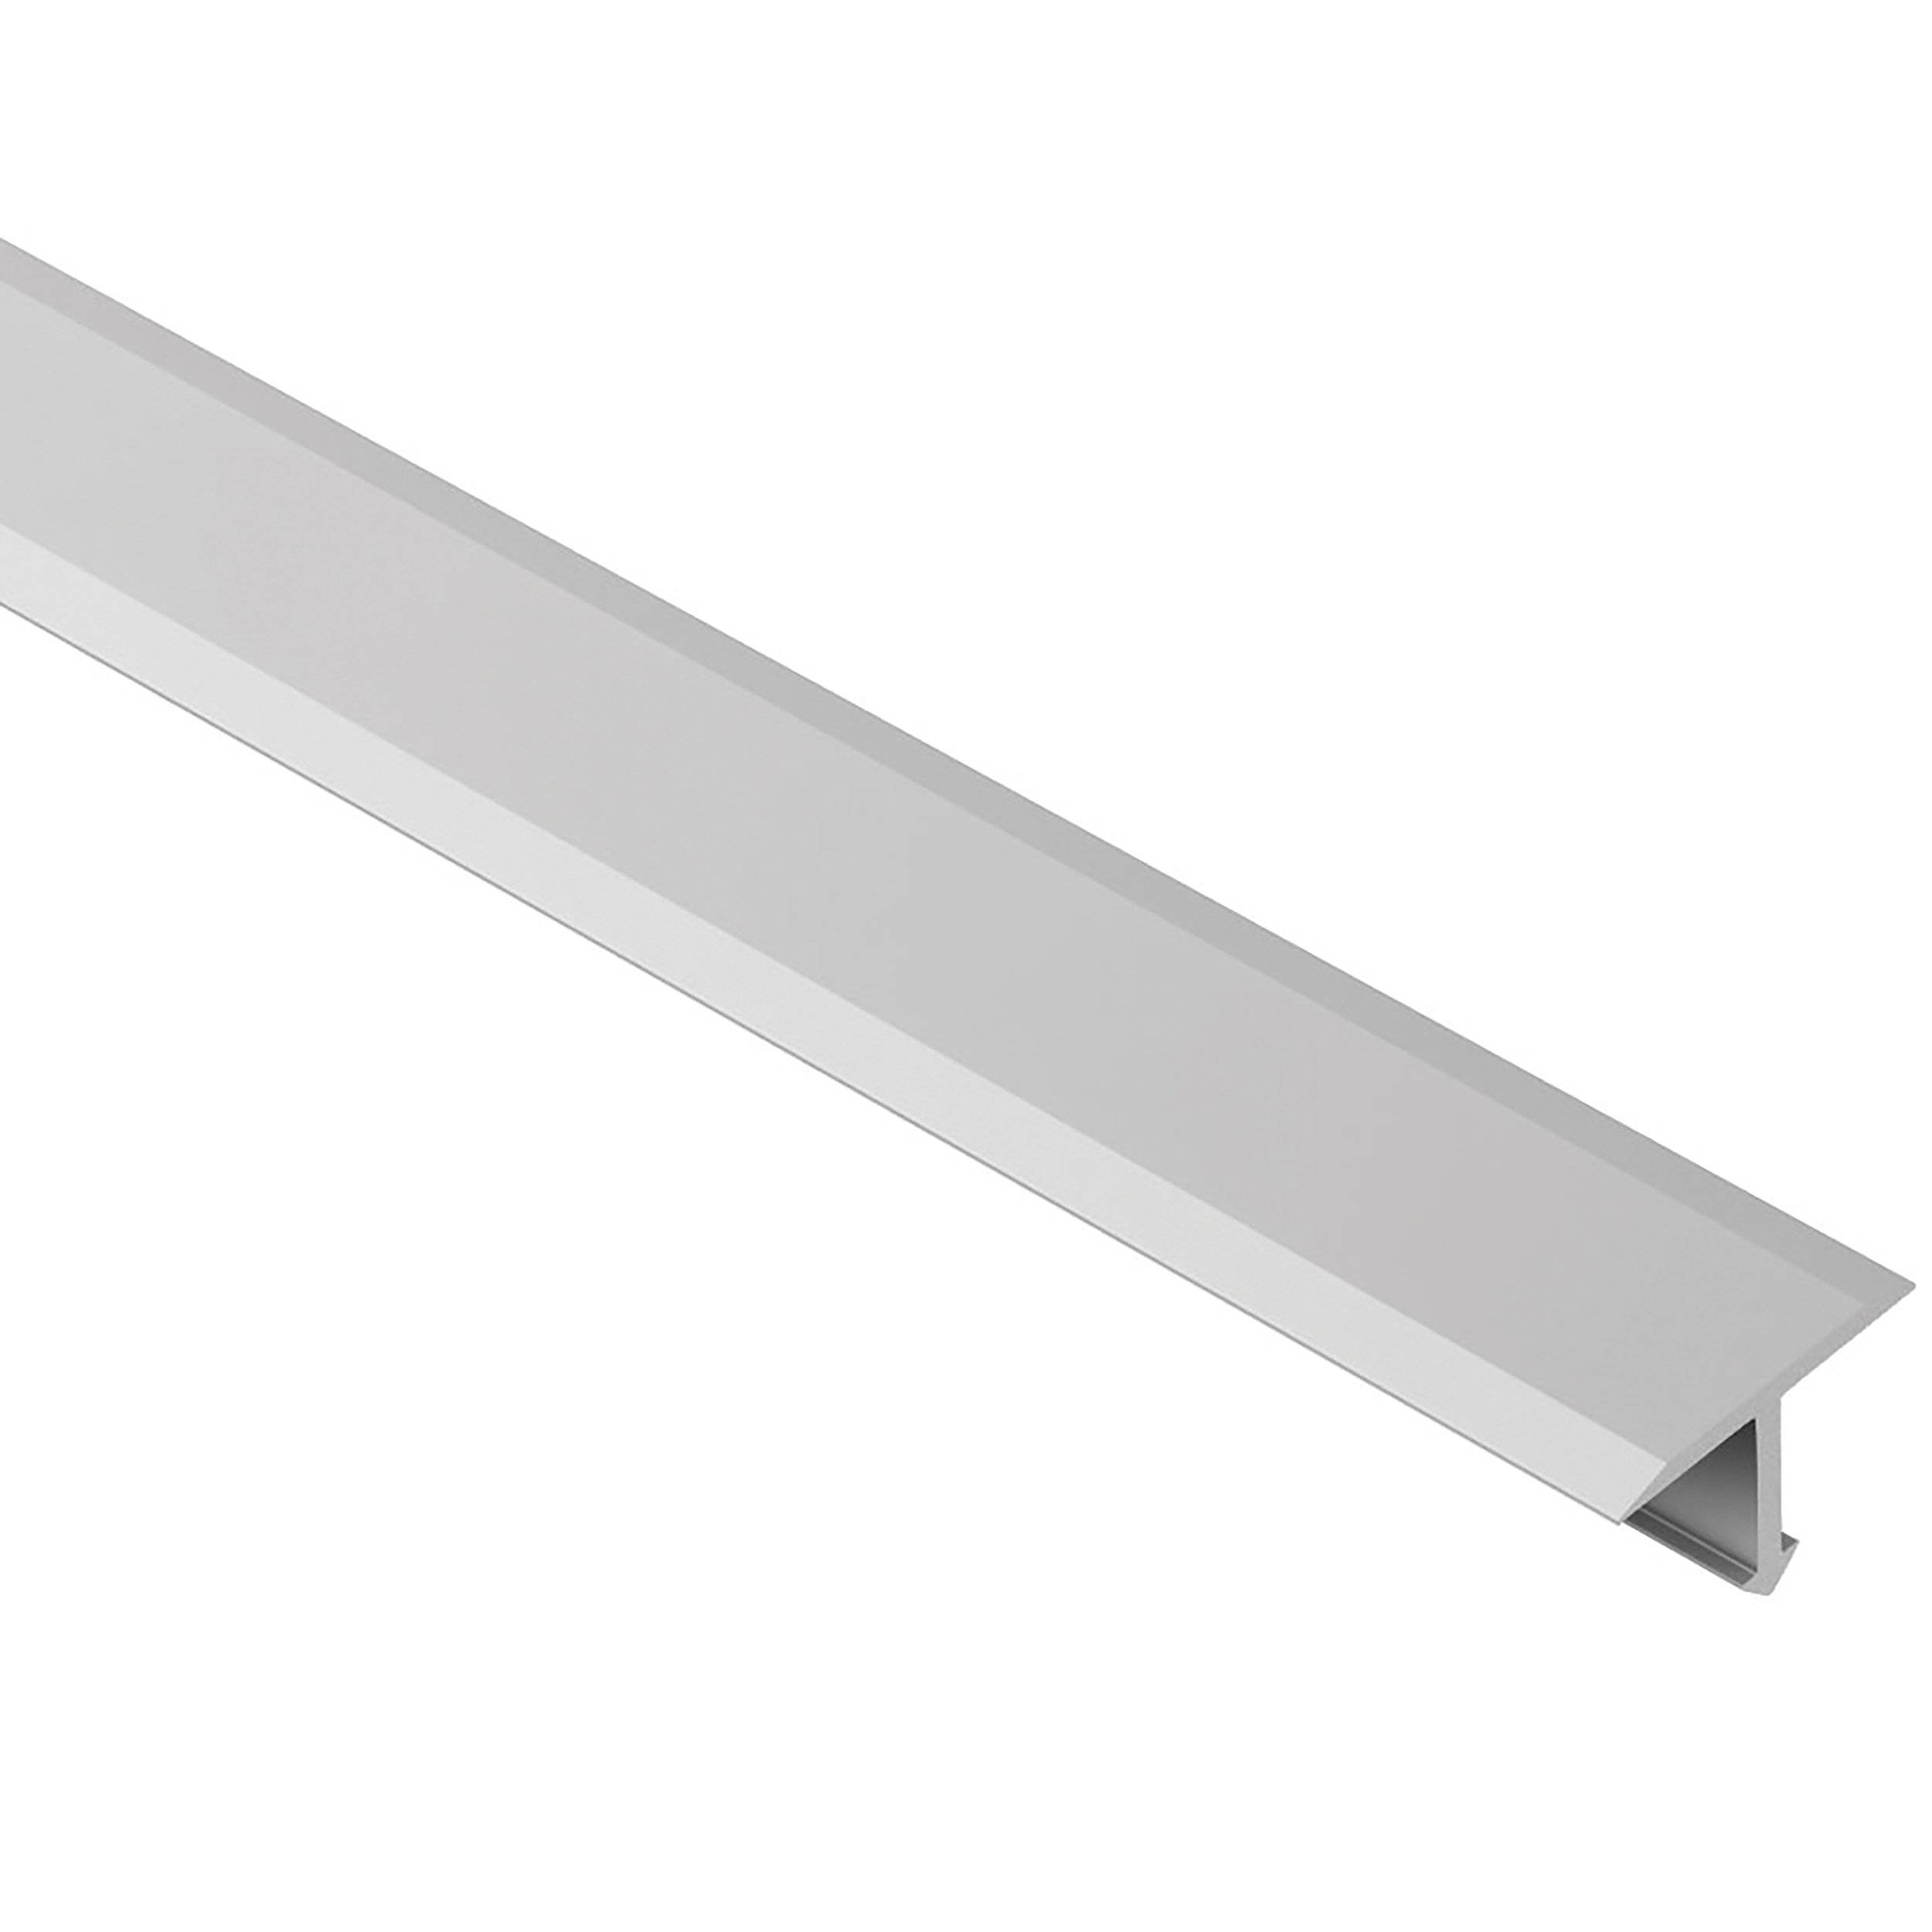 Schluter Reno Tk Satin Anodized Aluminum 1 2 In X 8 Ft 2 1 2 In Metal Reducer Tile Edging Trim 1 2in 951500190 Floor And Decor